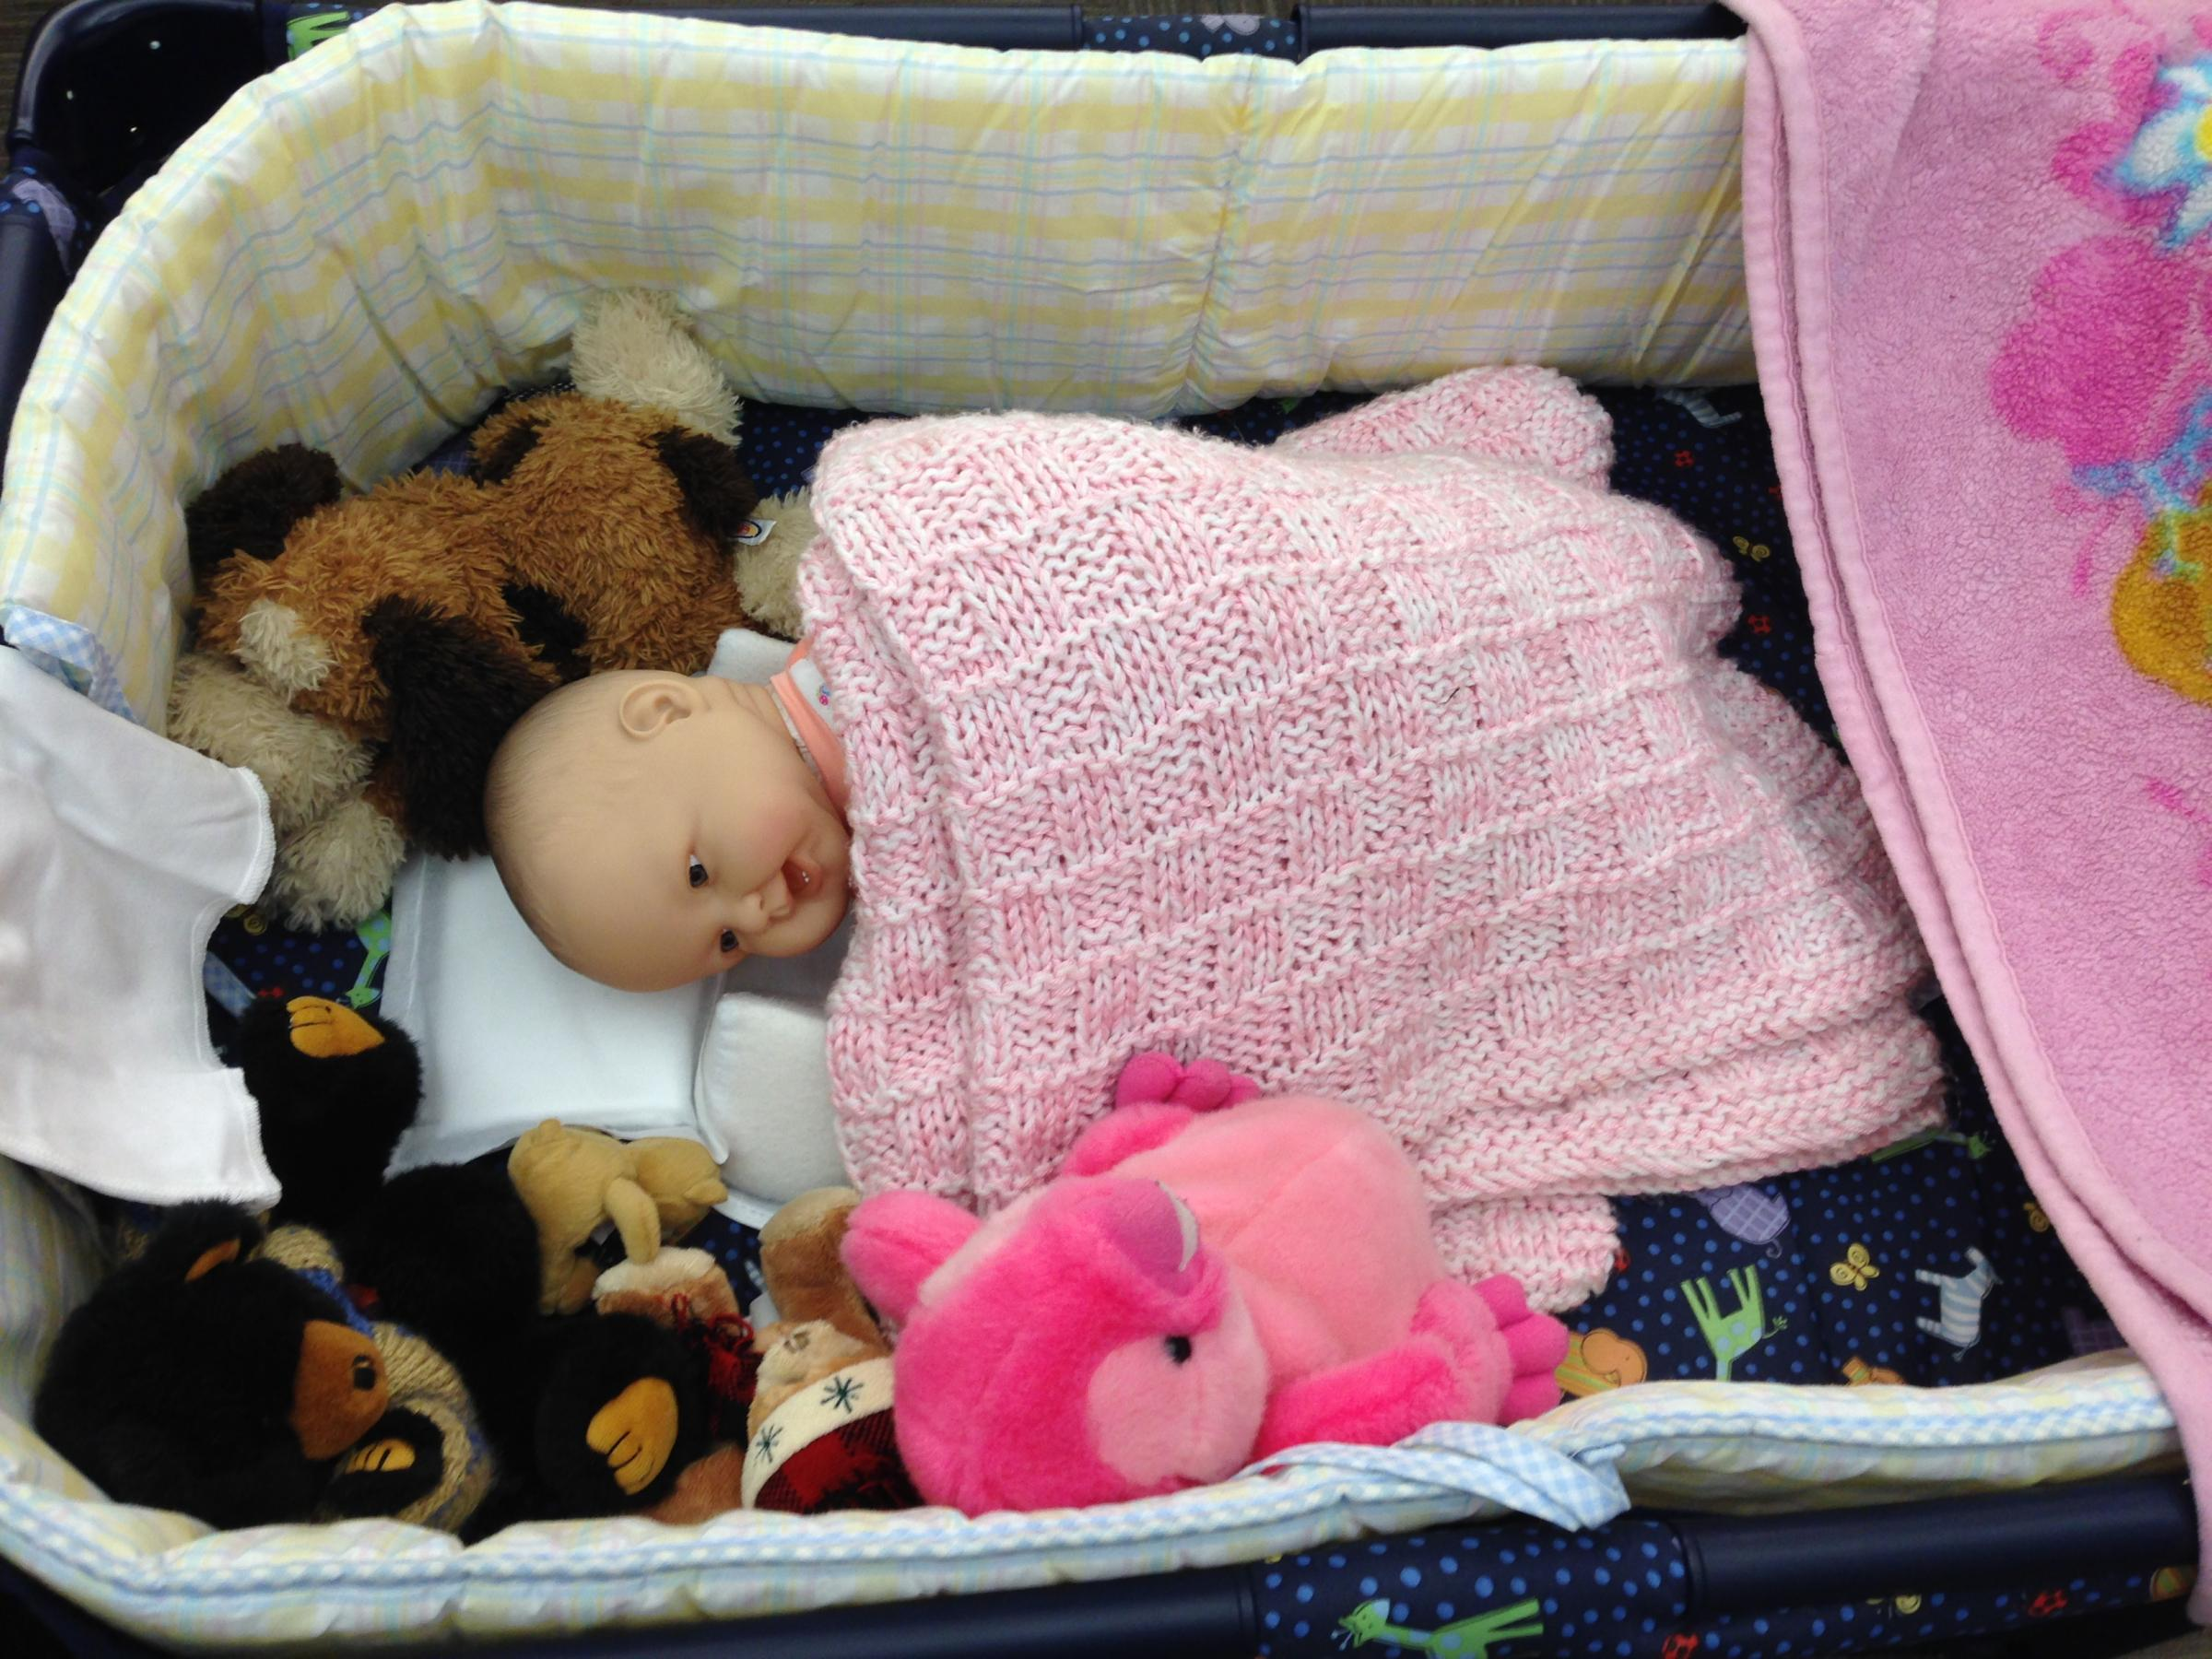 The safe sleep campaign urges parents not to keep a crib full of dangerous clutter